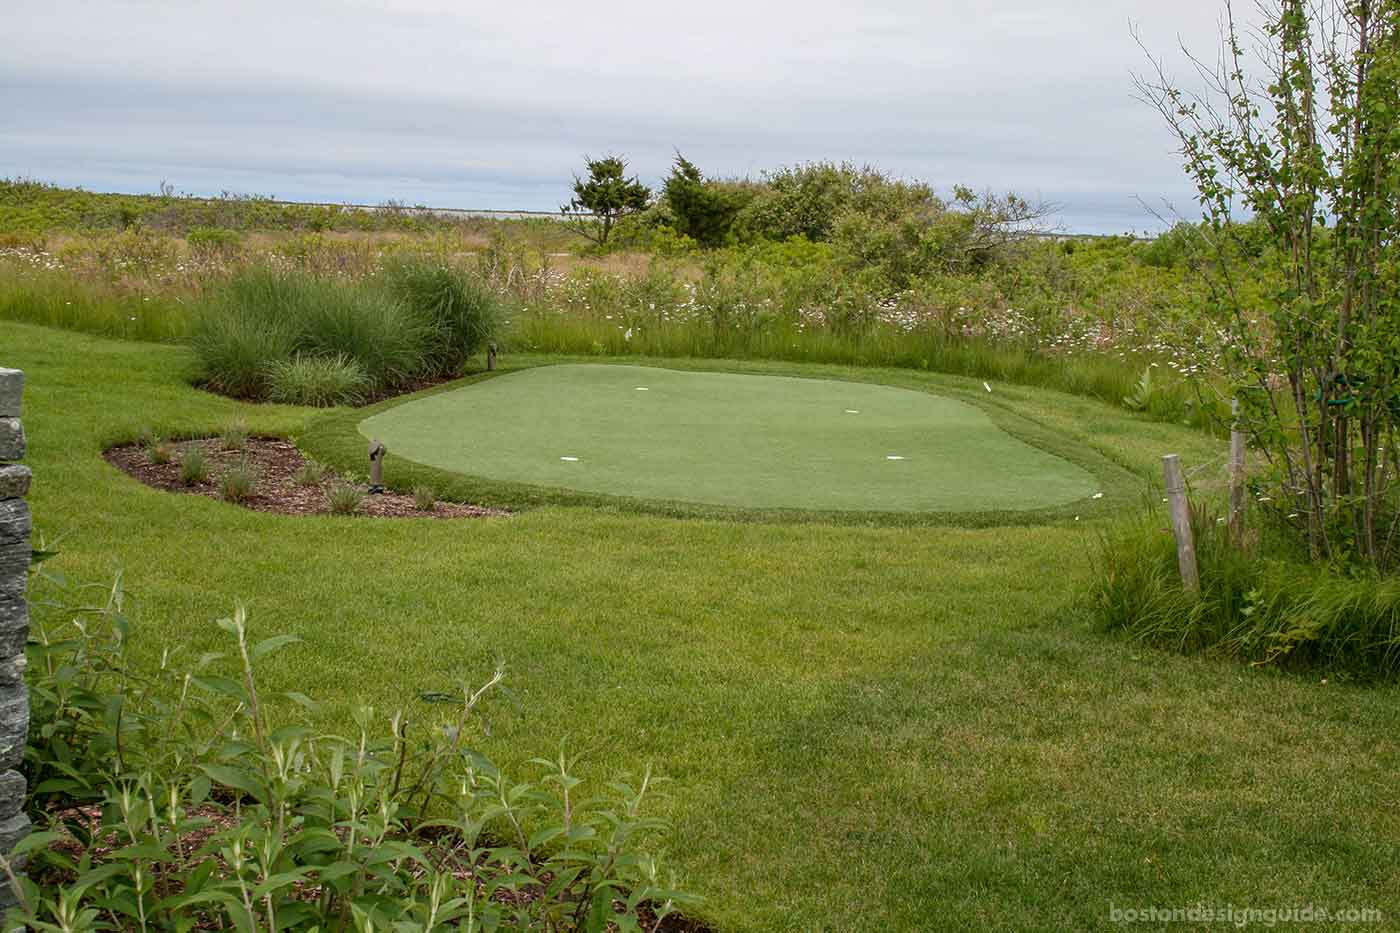 Residential putting green designed by Sudbury Design Group